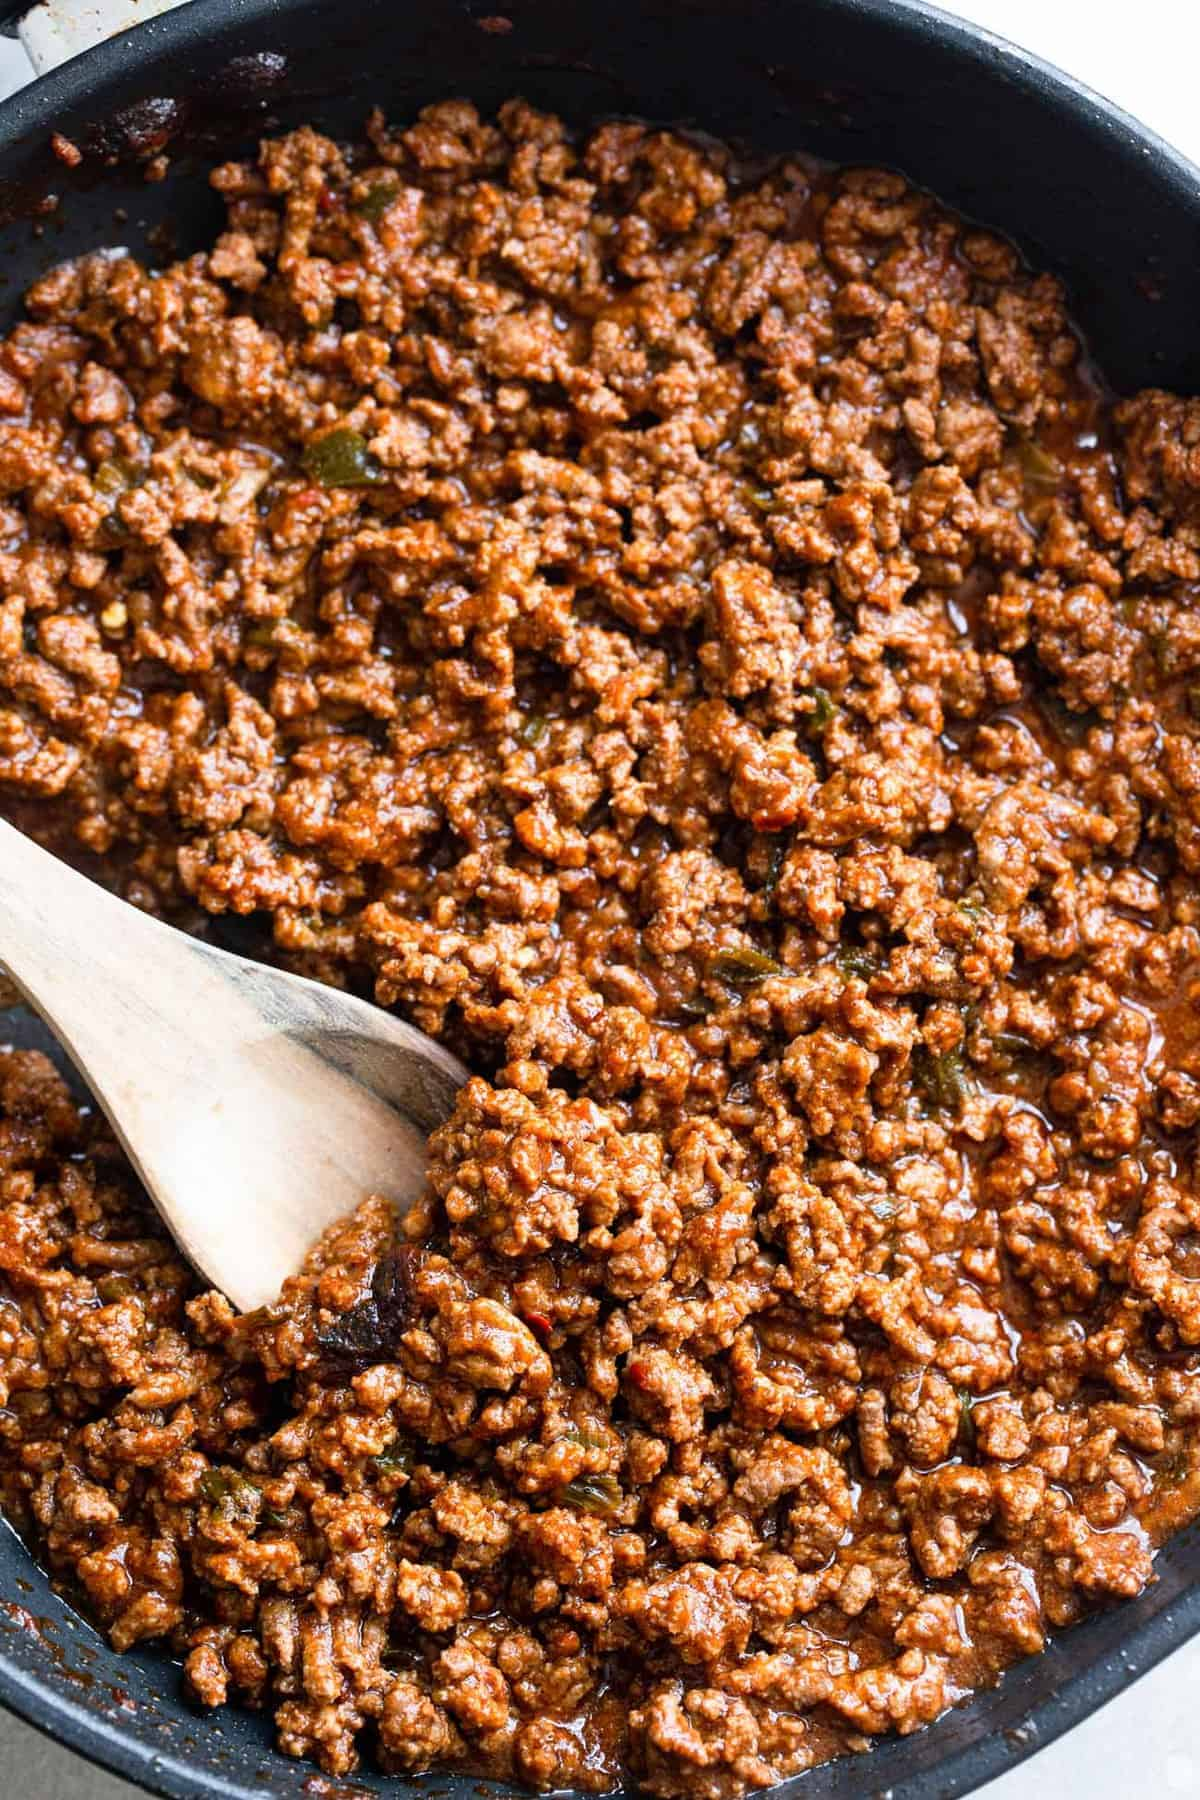 Close up of Keto sloppy joes in a pan